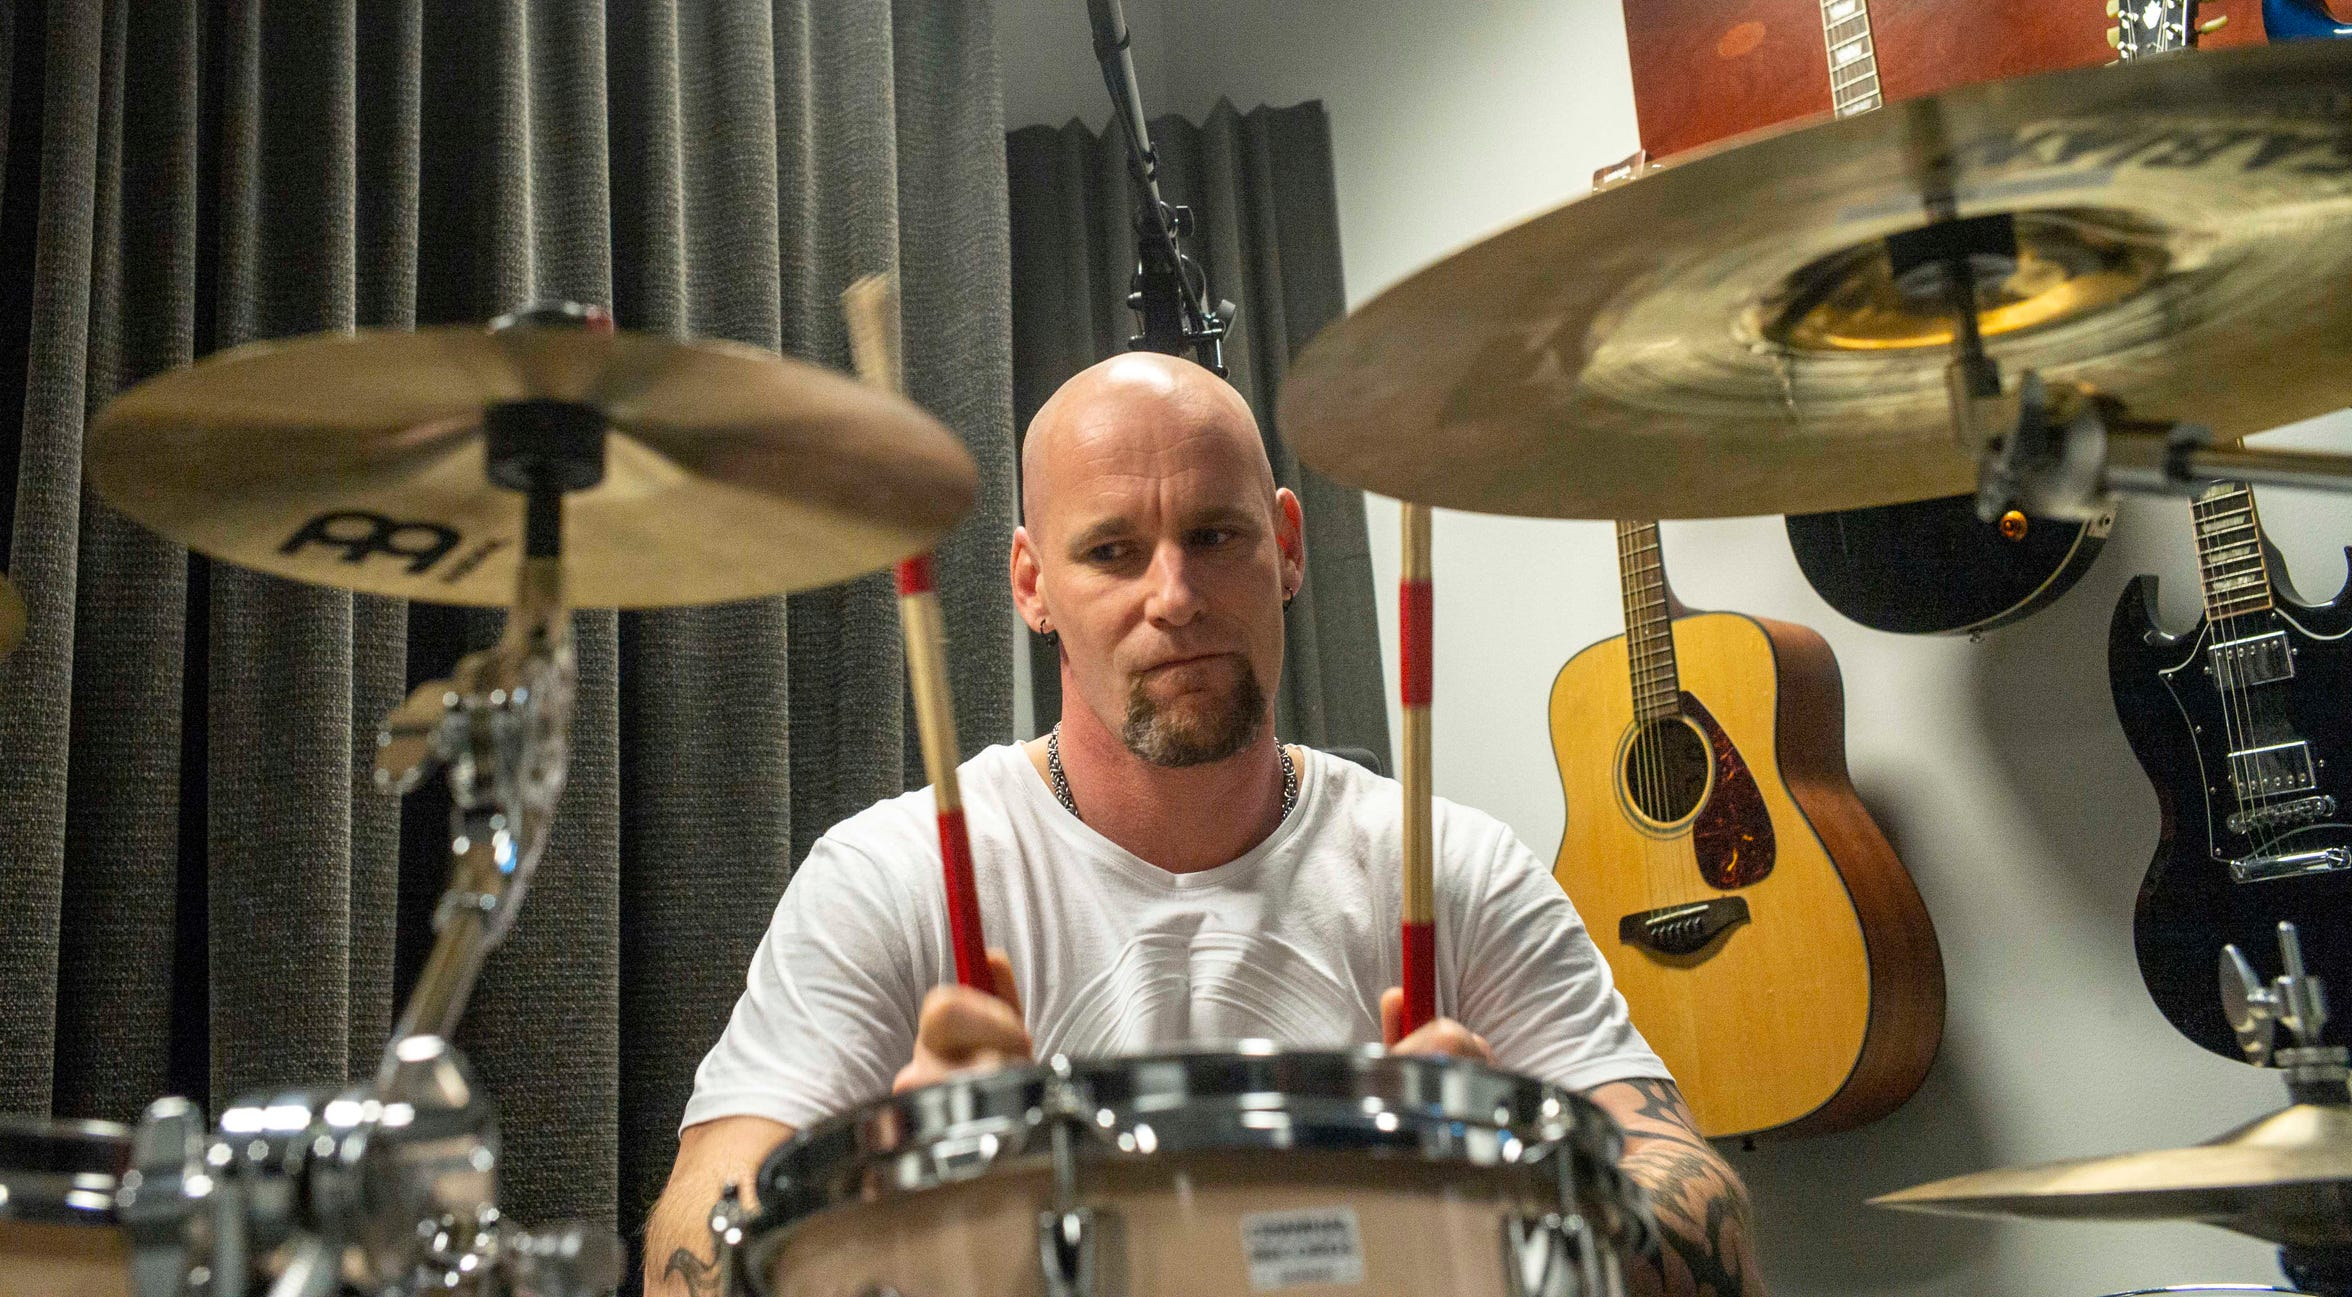 Inmate Mike, who didn't give his last name, plays the drums at Halden Prison in Norway. He's from the Netherlands, and among 40 percent of Halden prisoners who come from foreign countries.